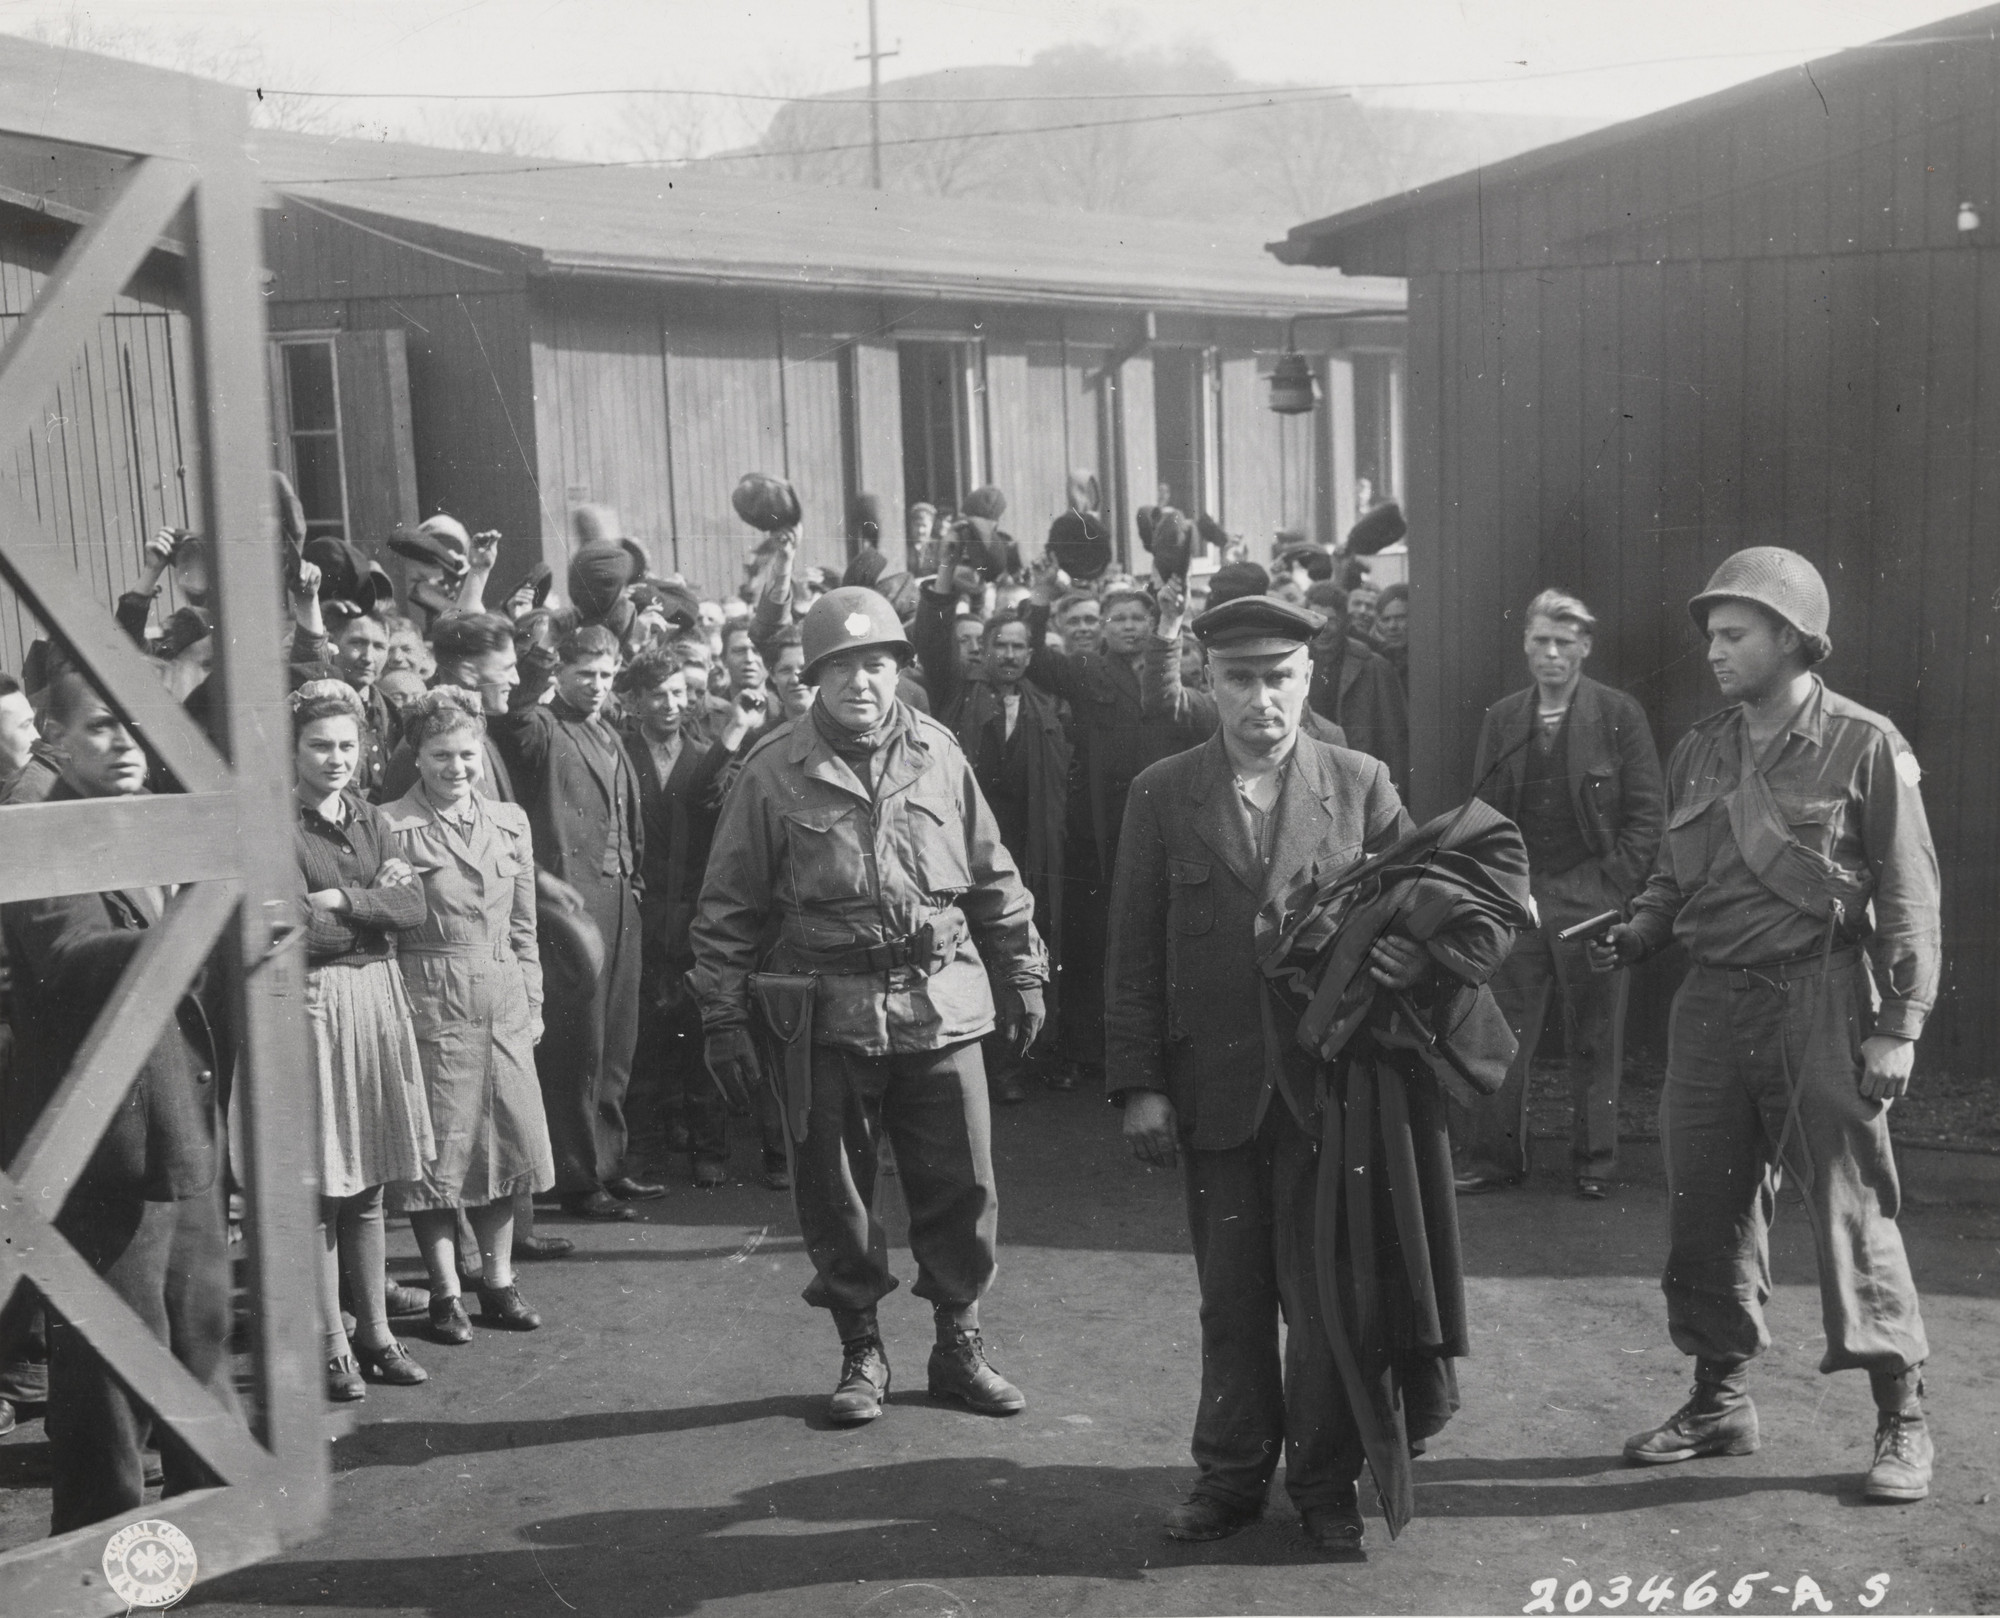 "U.S. Army Signal Corps. ""Major Anthony Malankowski and Private Arthur Fields Lead Away the Commandant of Altendorn Camp"". April 13, 1945"